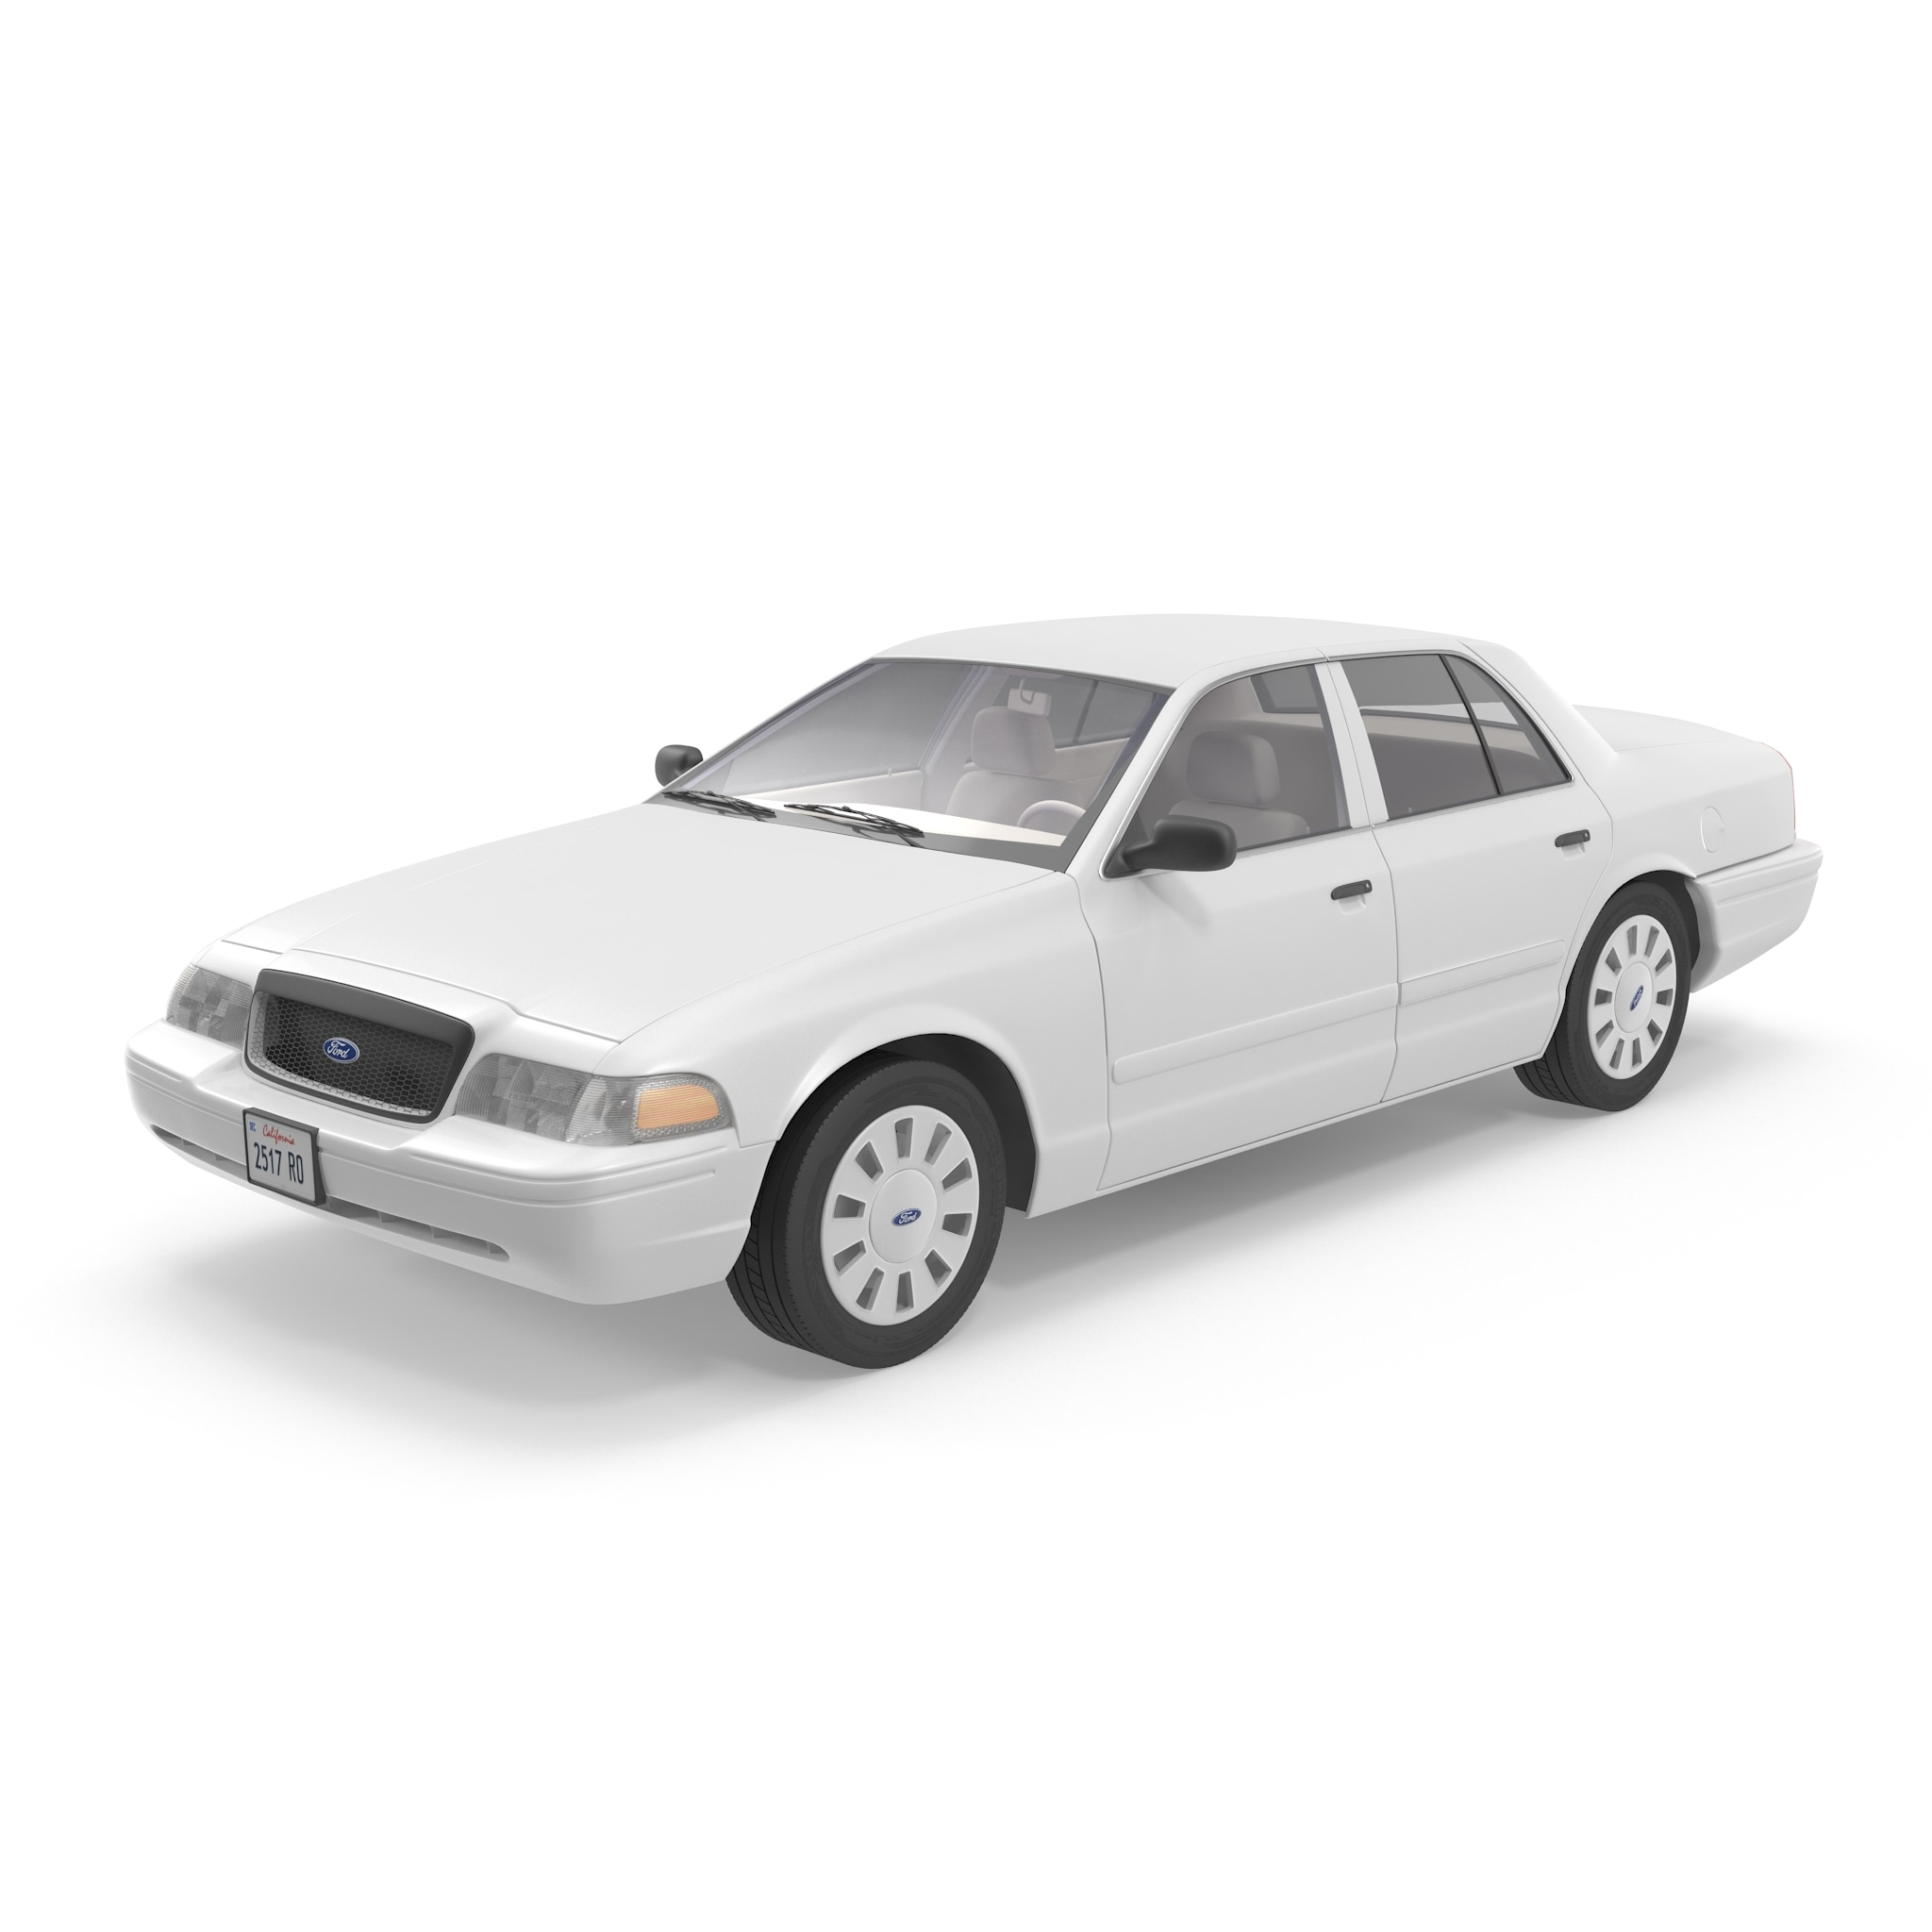 Ford_Crown_Victoria_Beauty_0000.jpg